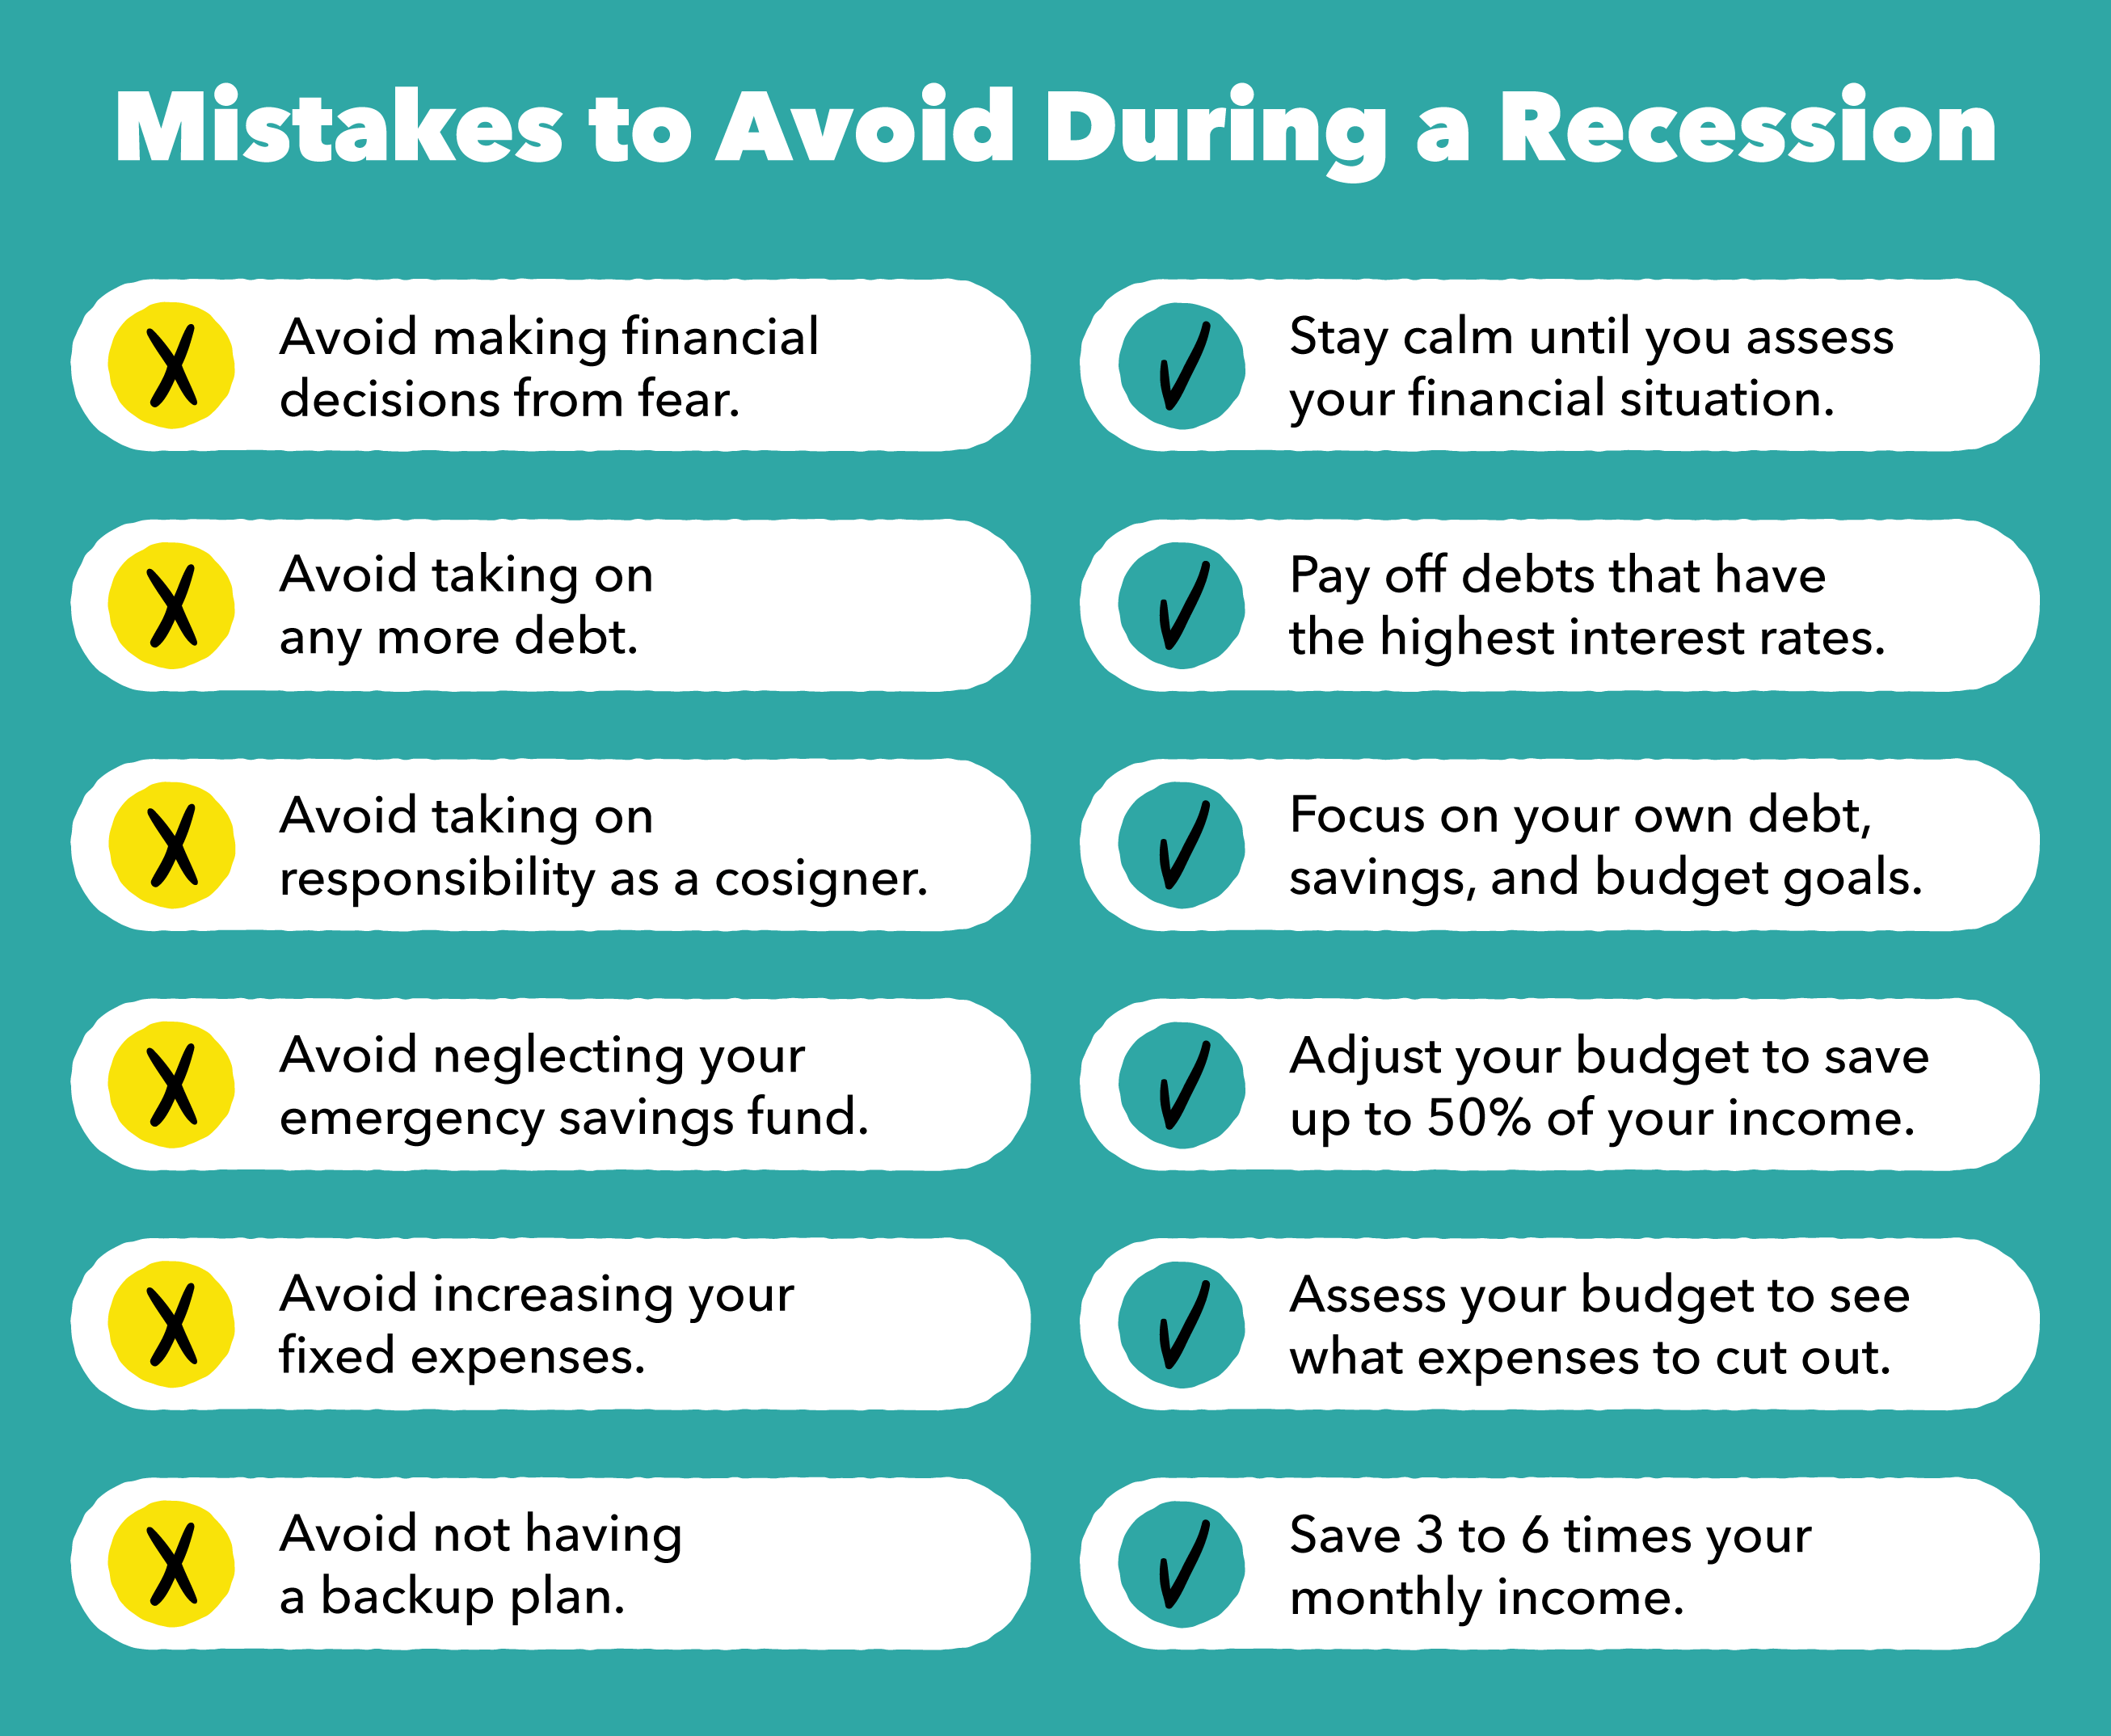 Mistakes to Avoid During a Recession